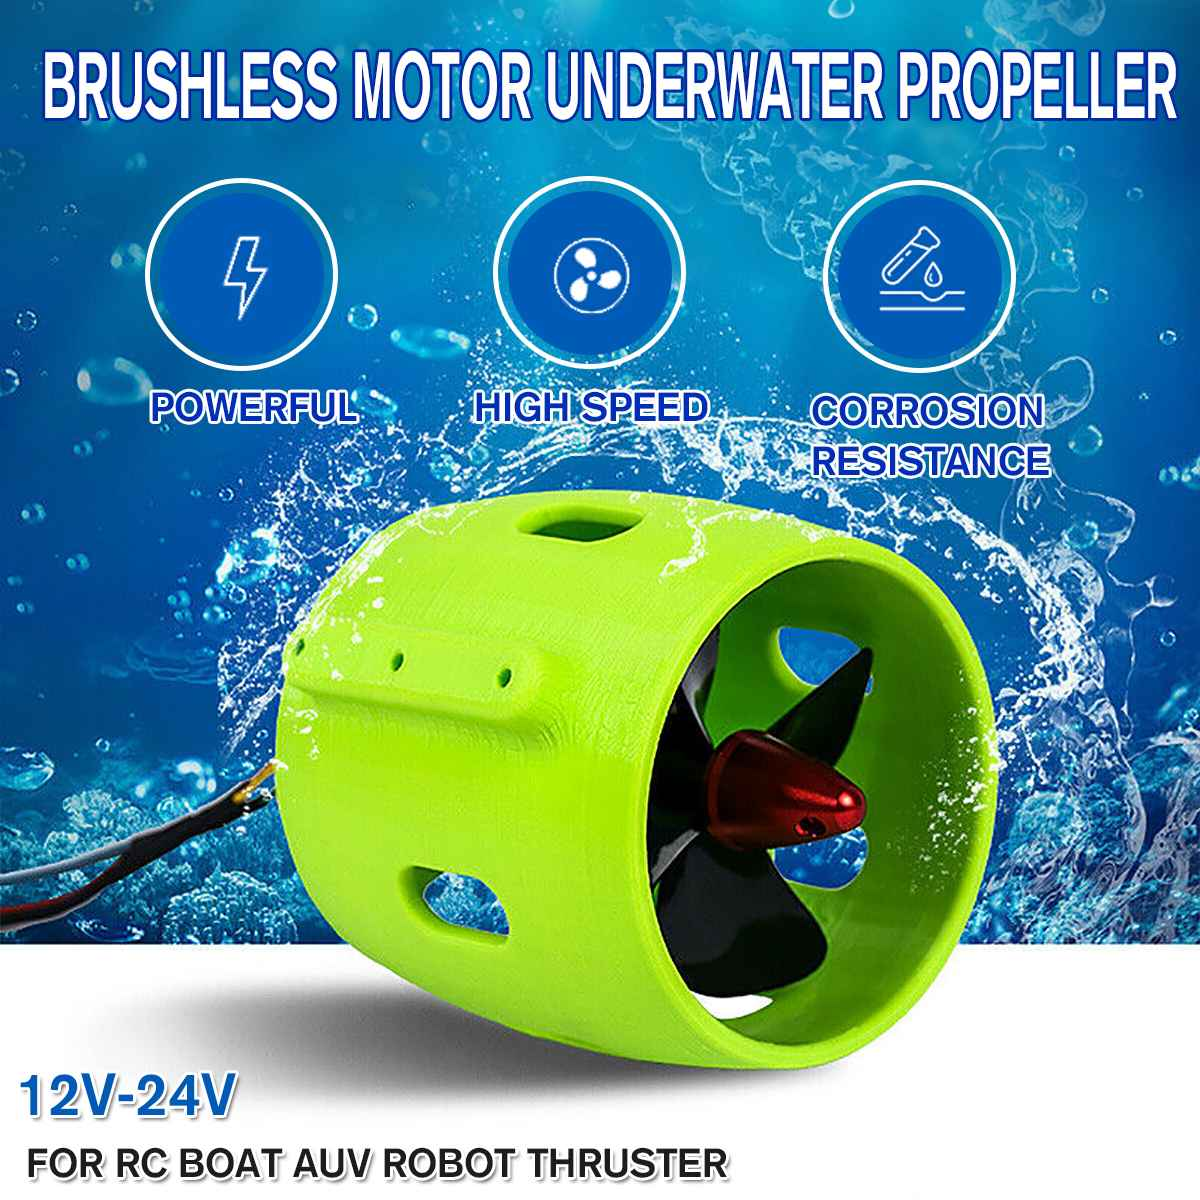 NEW 12V 24V 17A Underwater Thruster Brushless Motor 4 Blade Propeller Propulsion 100-300W Parts For ROV RC Bait Tug Boat